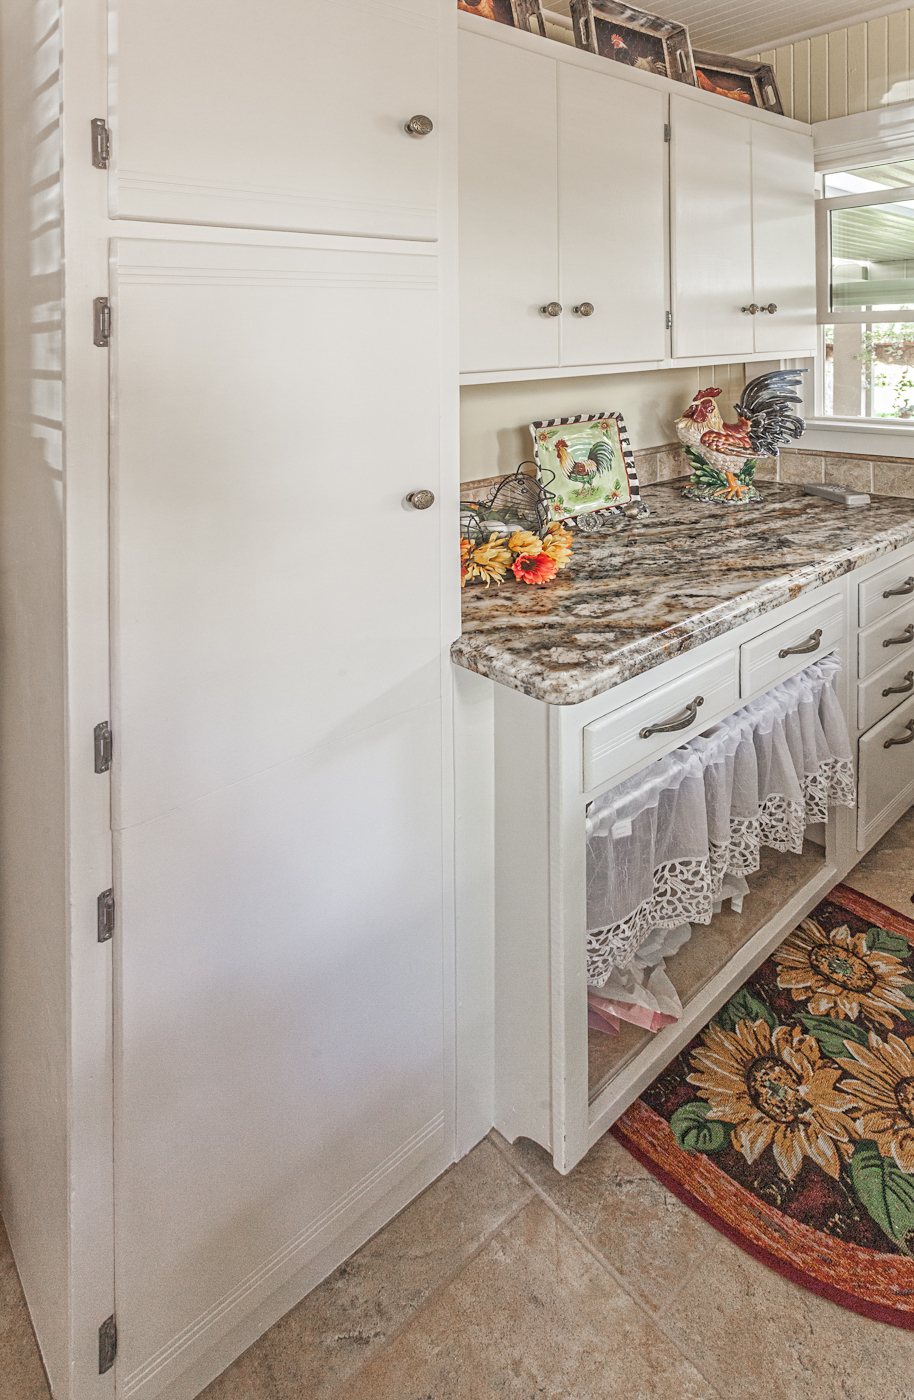 Kitchen Case Study (White Country Cabinets)